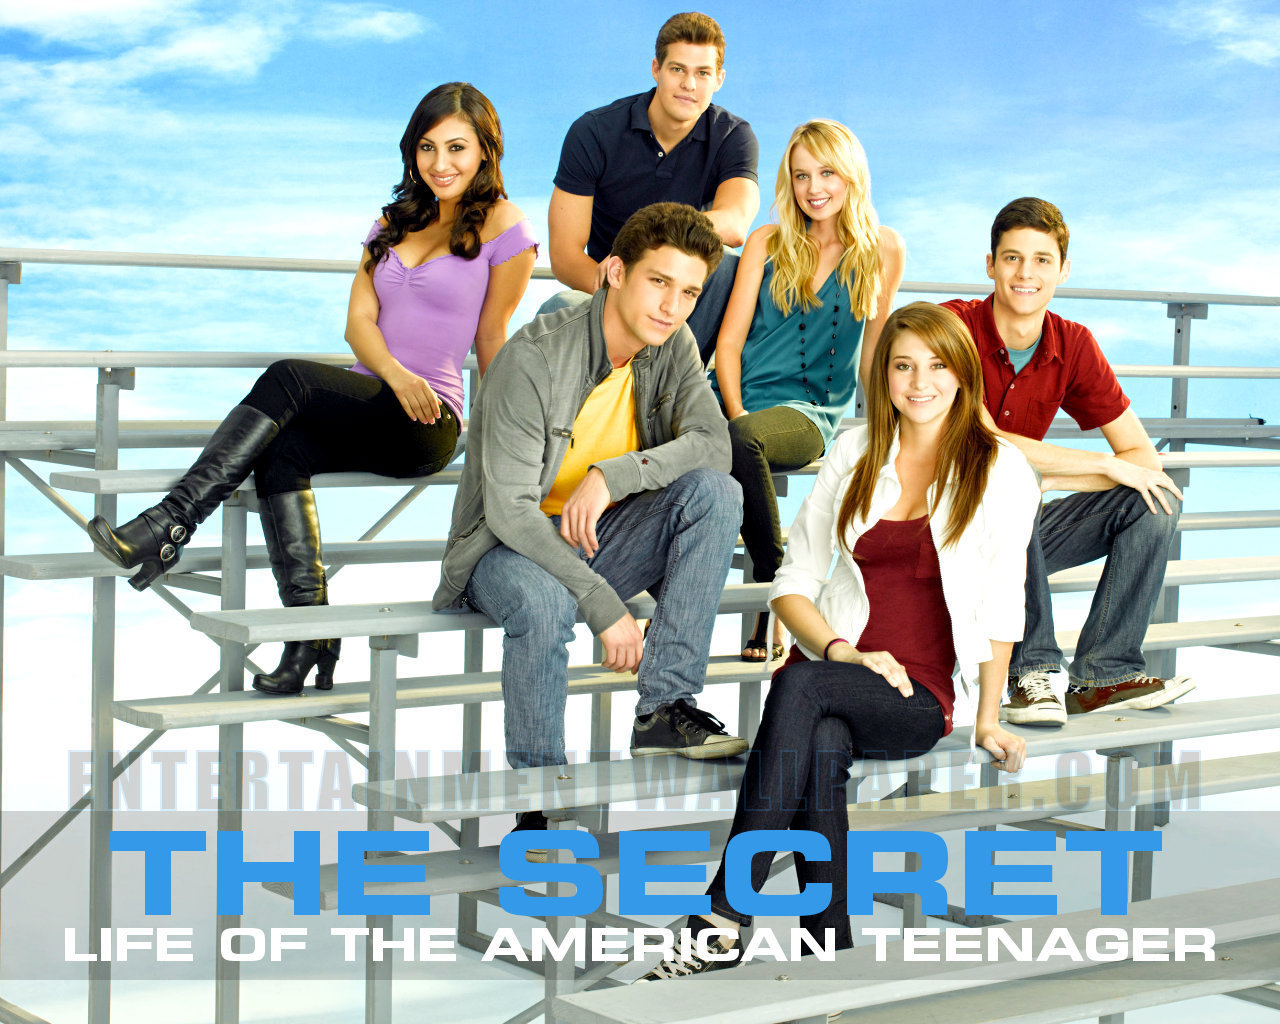 The Secret Life of the American Teenager images Ben,Grace,Jack,Amy,Ricky,Adrian HD wallpaper and background photos